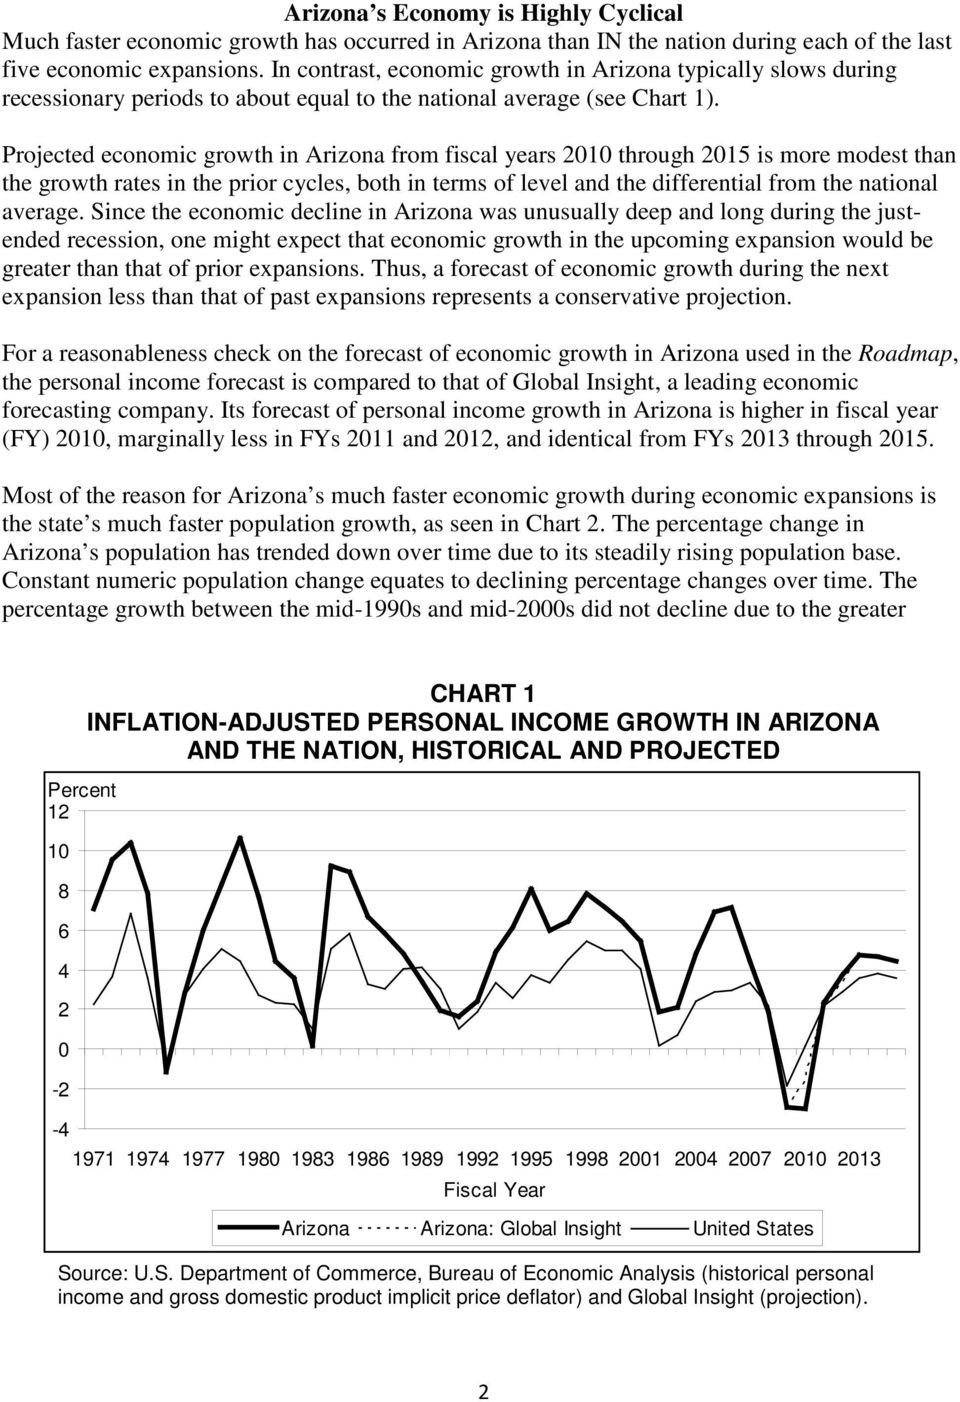 Projected economic growth in Arizona from fiscal years 21 through 215 is more modest than the growth rates in the prior cycles, both in terms of level and the differential from the national average.